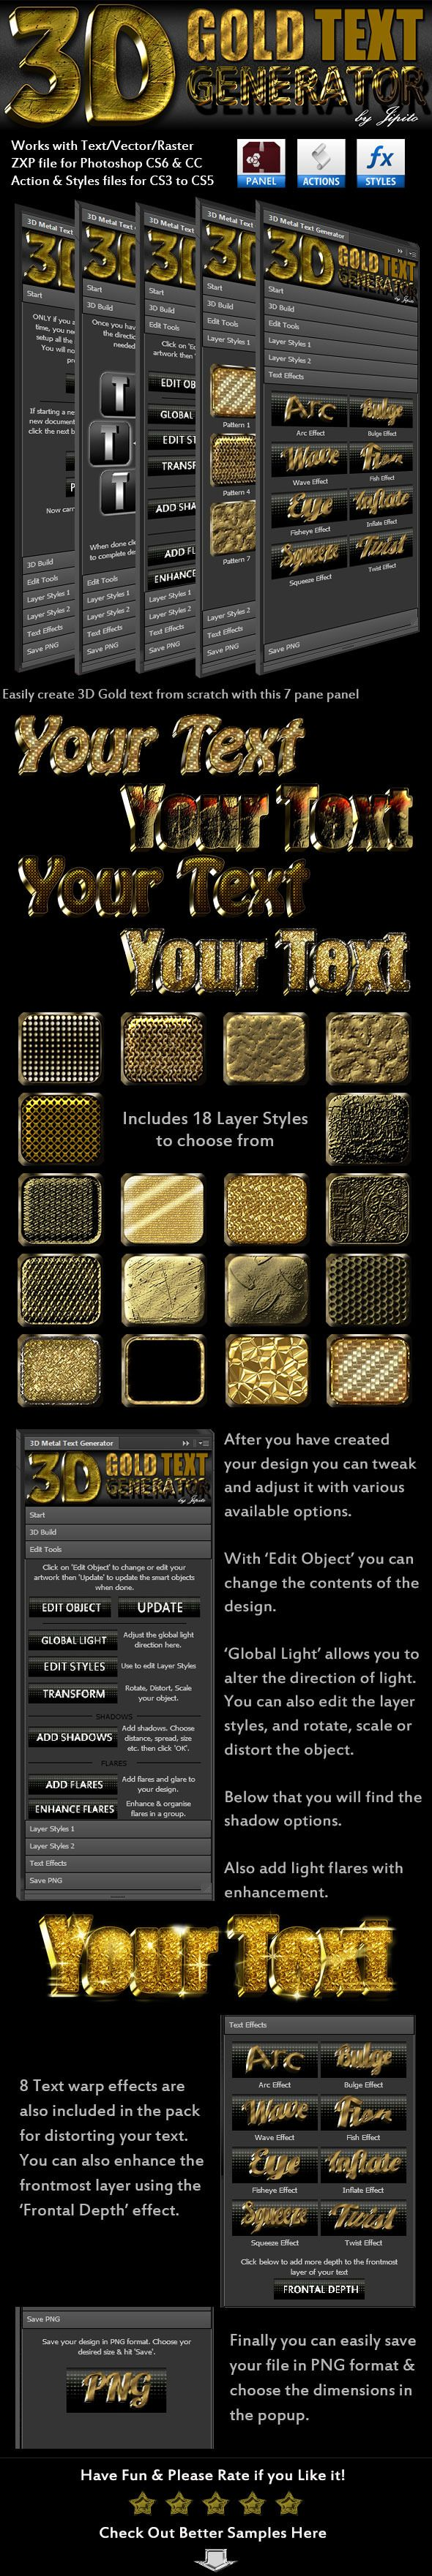 3D Gold Text Generator Panel | Fonts-logos-icons | Photoshop text